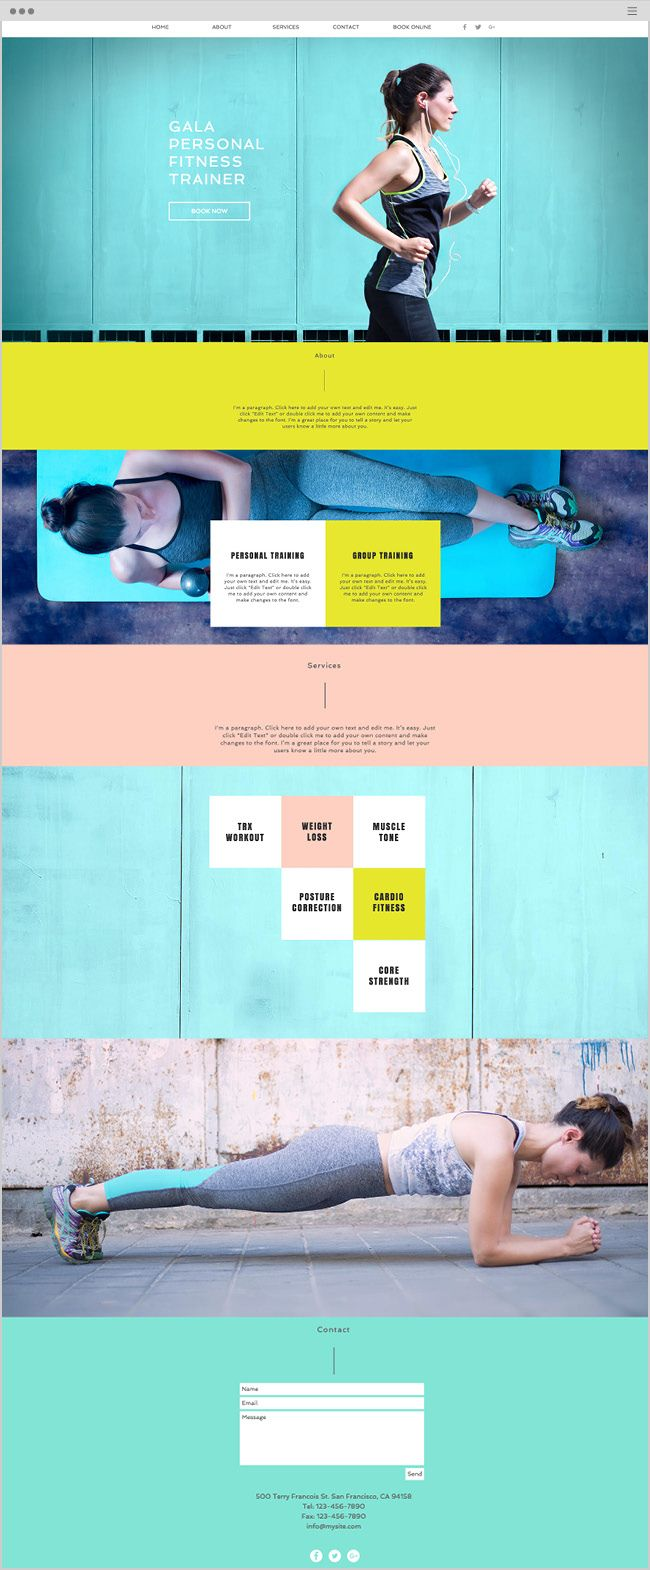 Solid color block pages with information paired with large bold photos w/ minimal type (ie just the stats or just a few words)